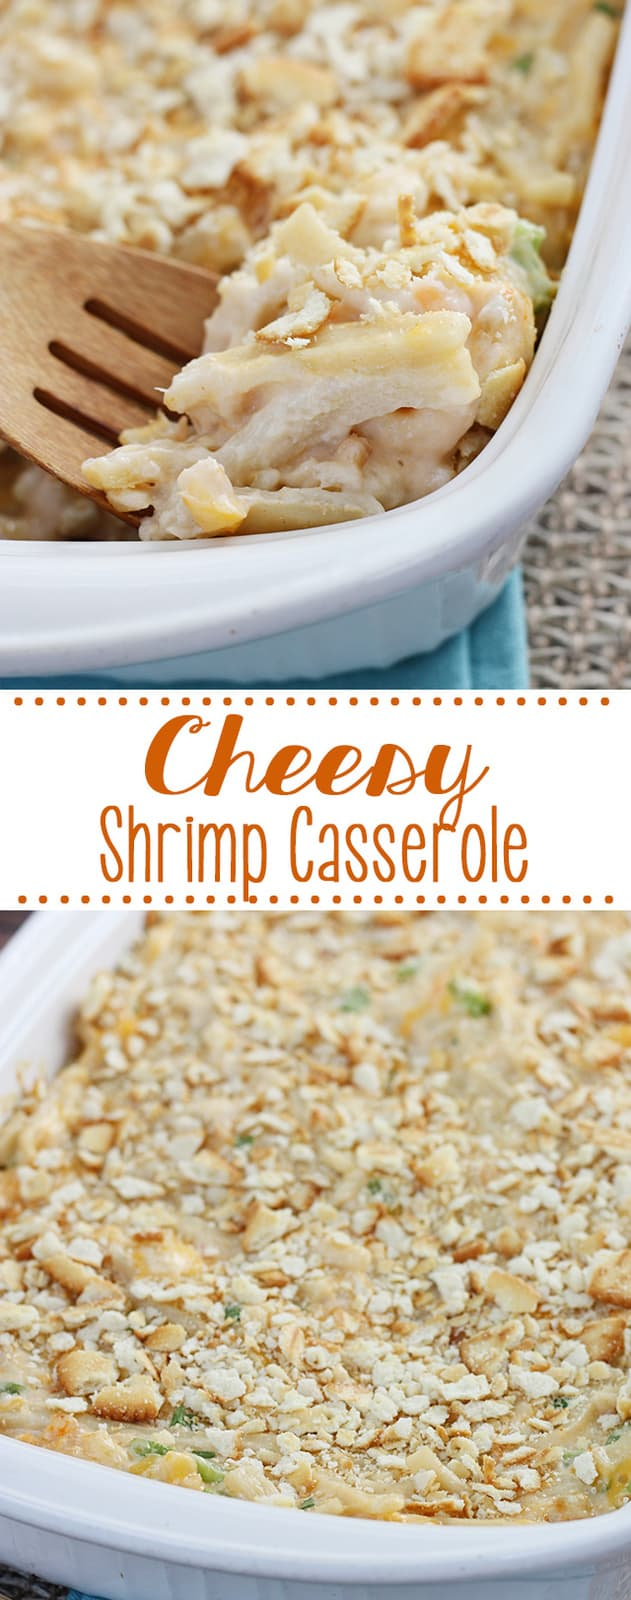 Cheesy Shrimp Casserole is the perfect dinner for a chilly night! Egg noodles and tiny shrimp in a creamy sauce - the entire family will love this one for sure!